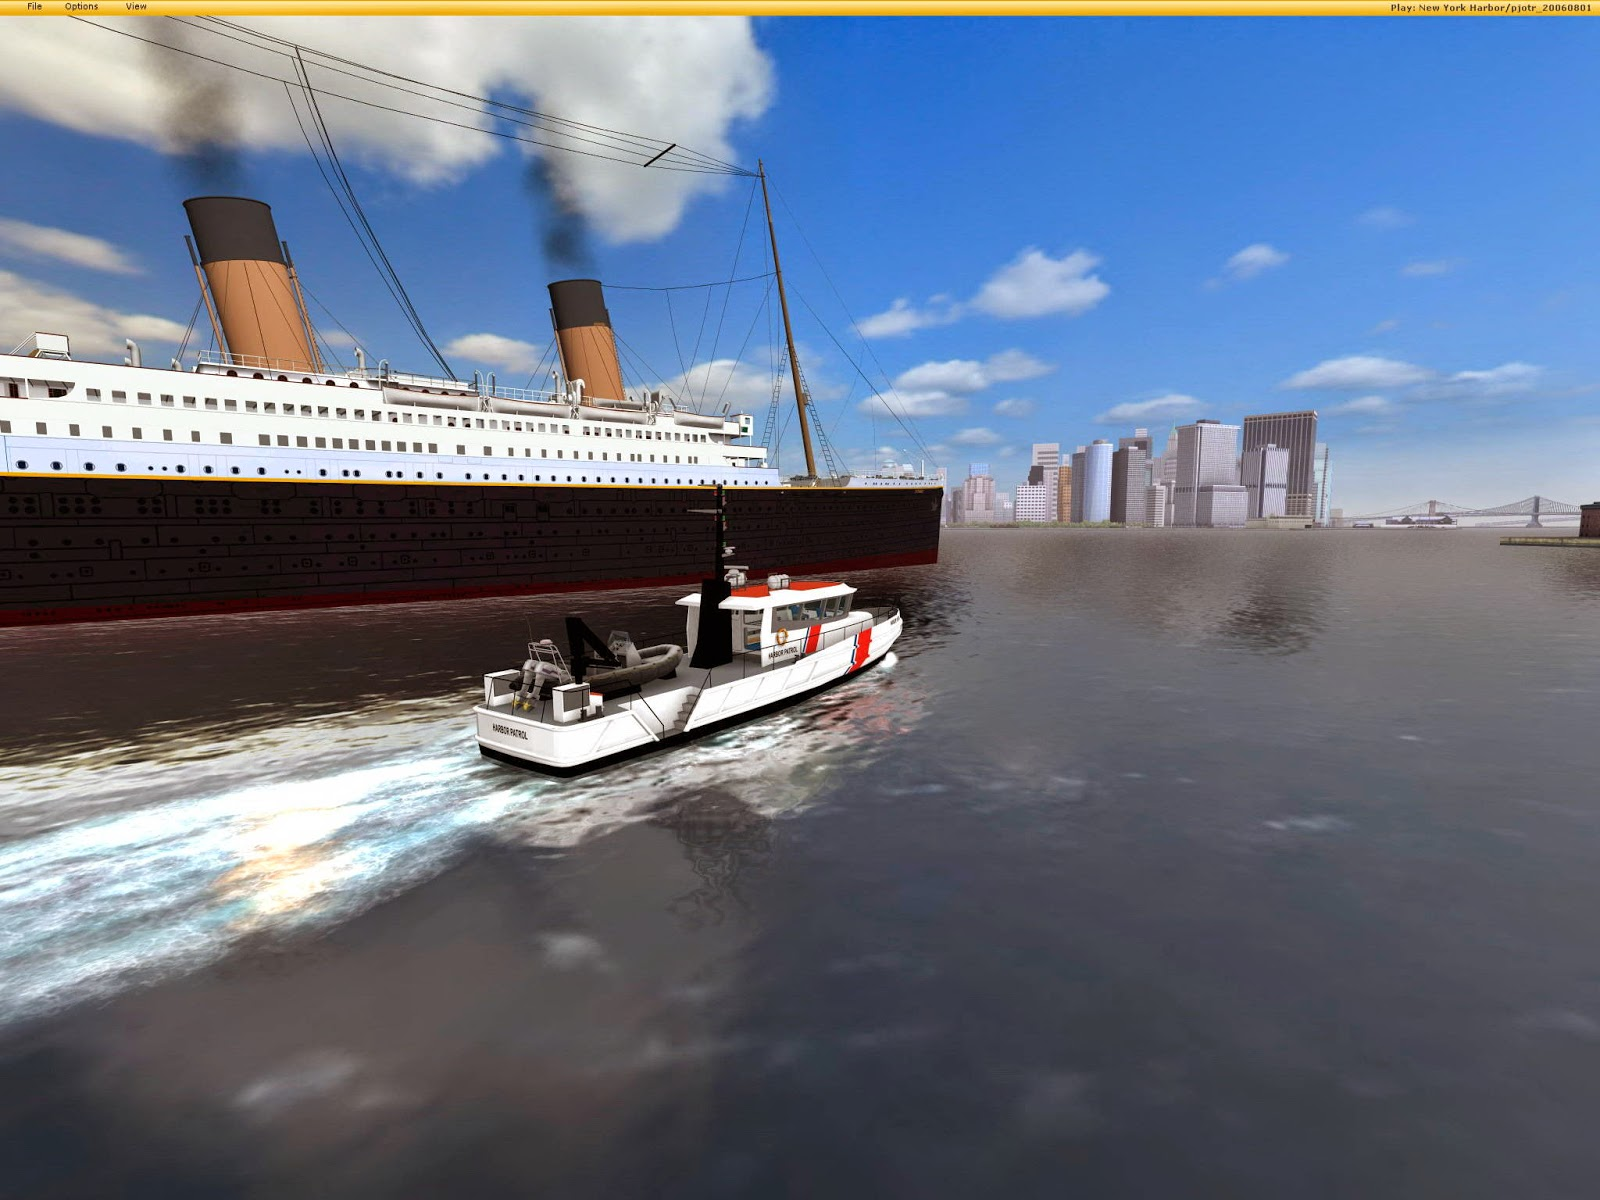 Ship simulator 2006 game free download full version for pc